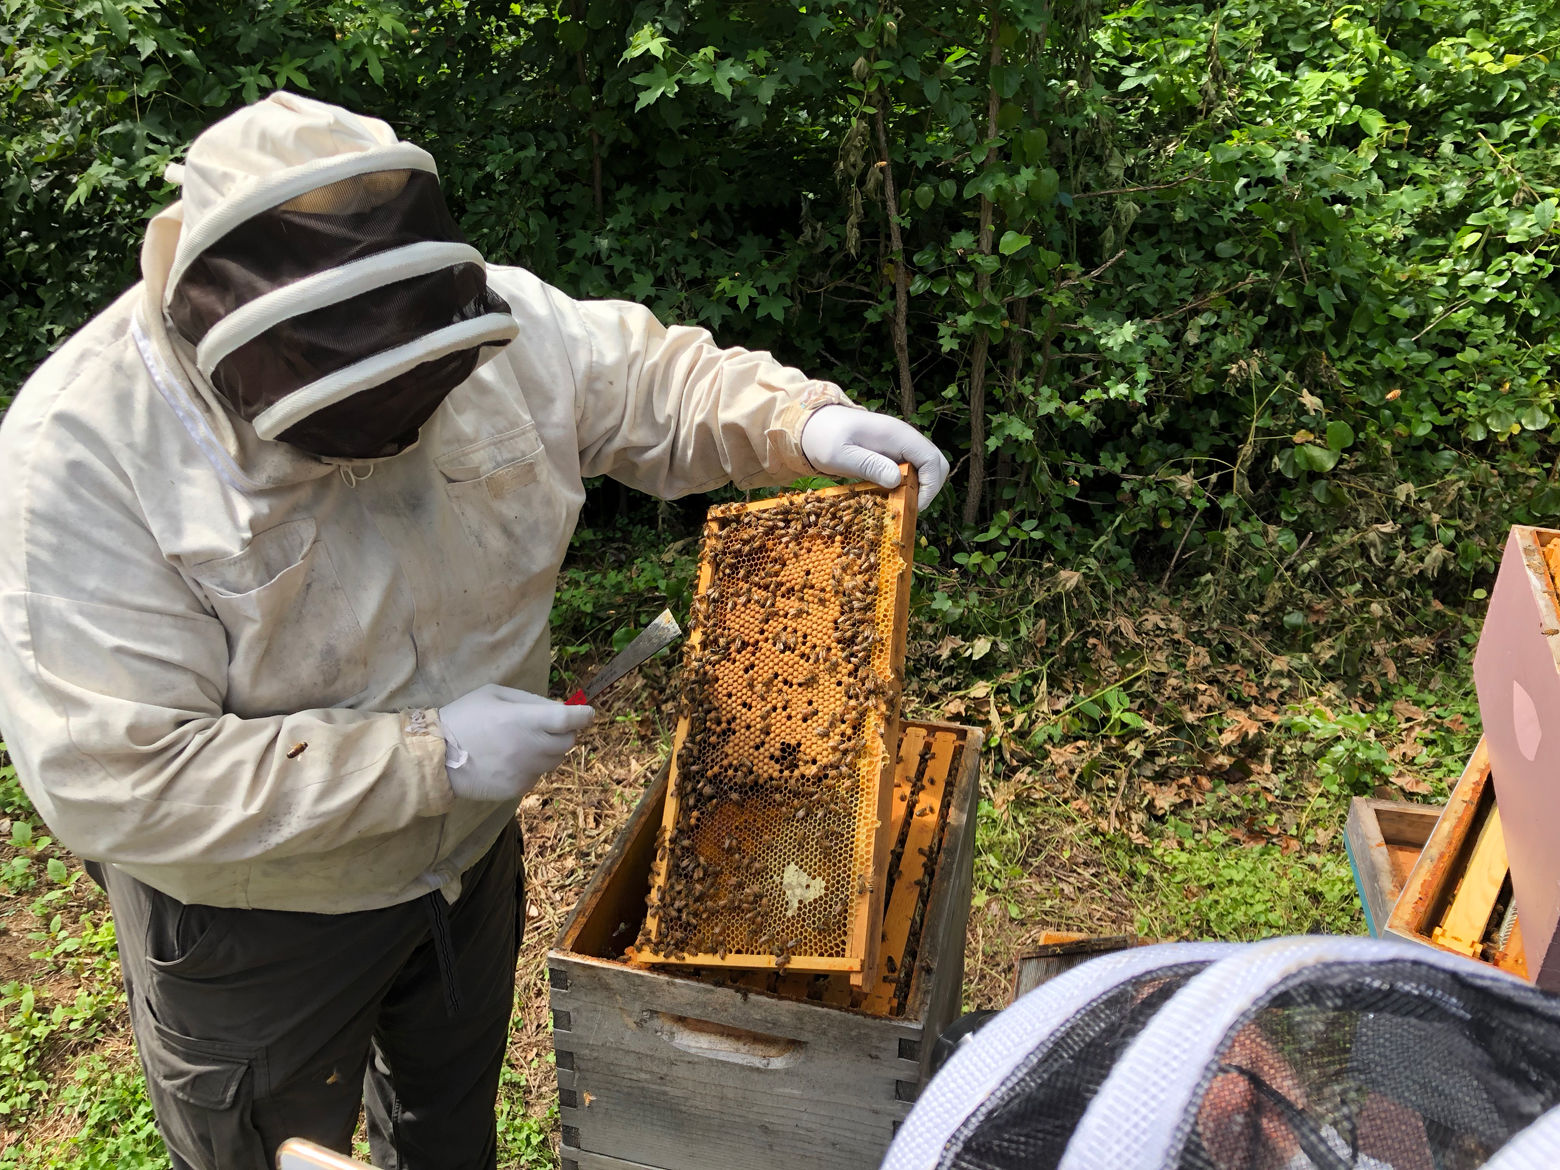 John Ferree inspects a screen from the hives he cultivates at the Mount Vernon Estate in Virginia on Aug. 13, 2018.. (WTOP/Dan Friedell)